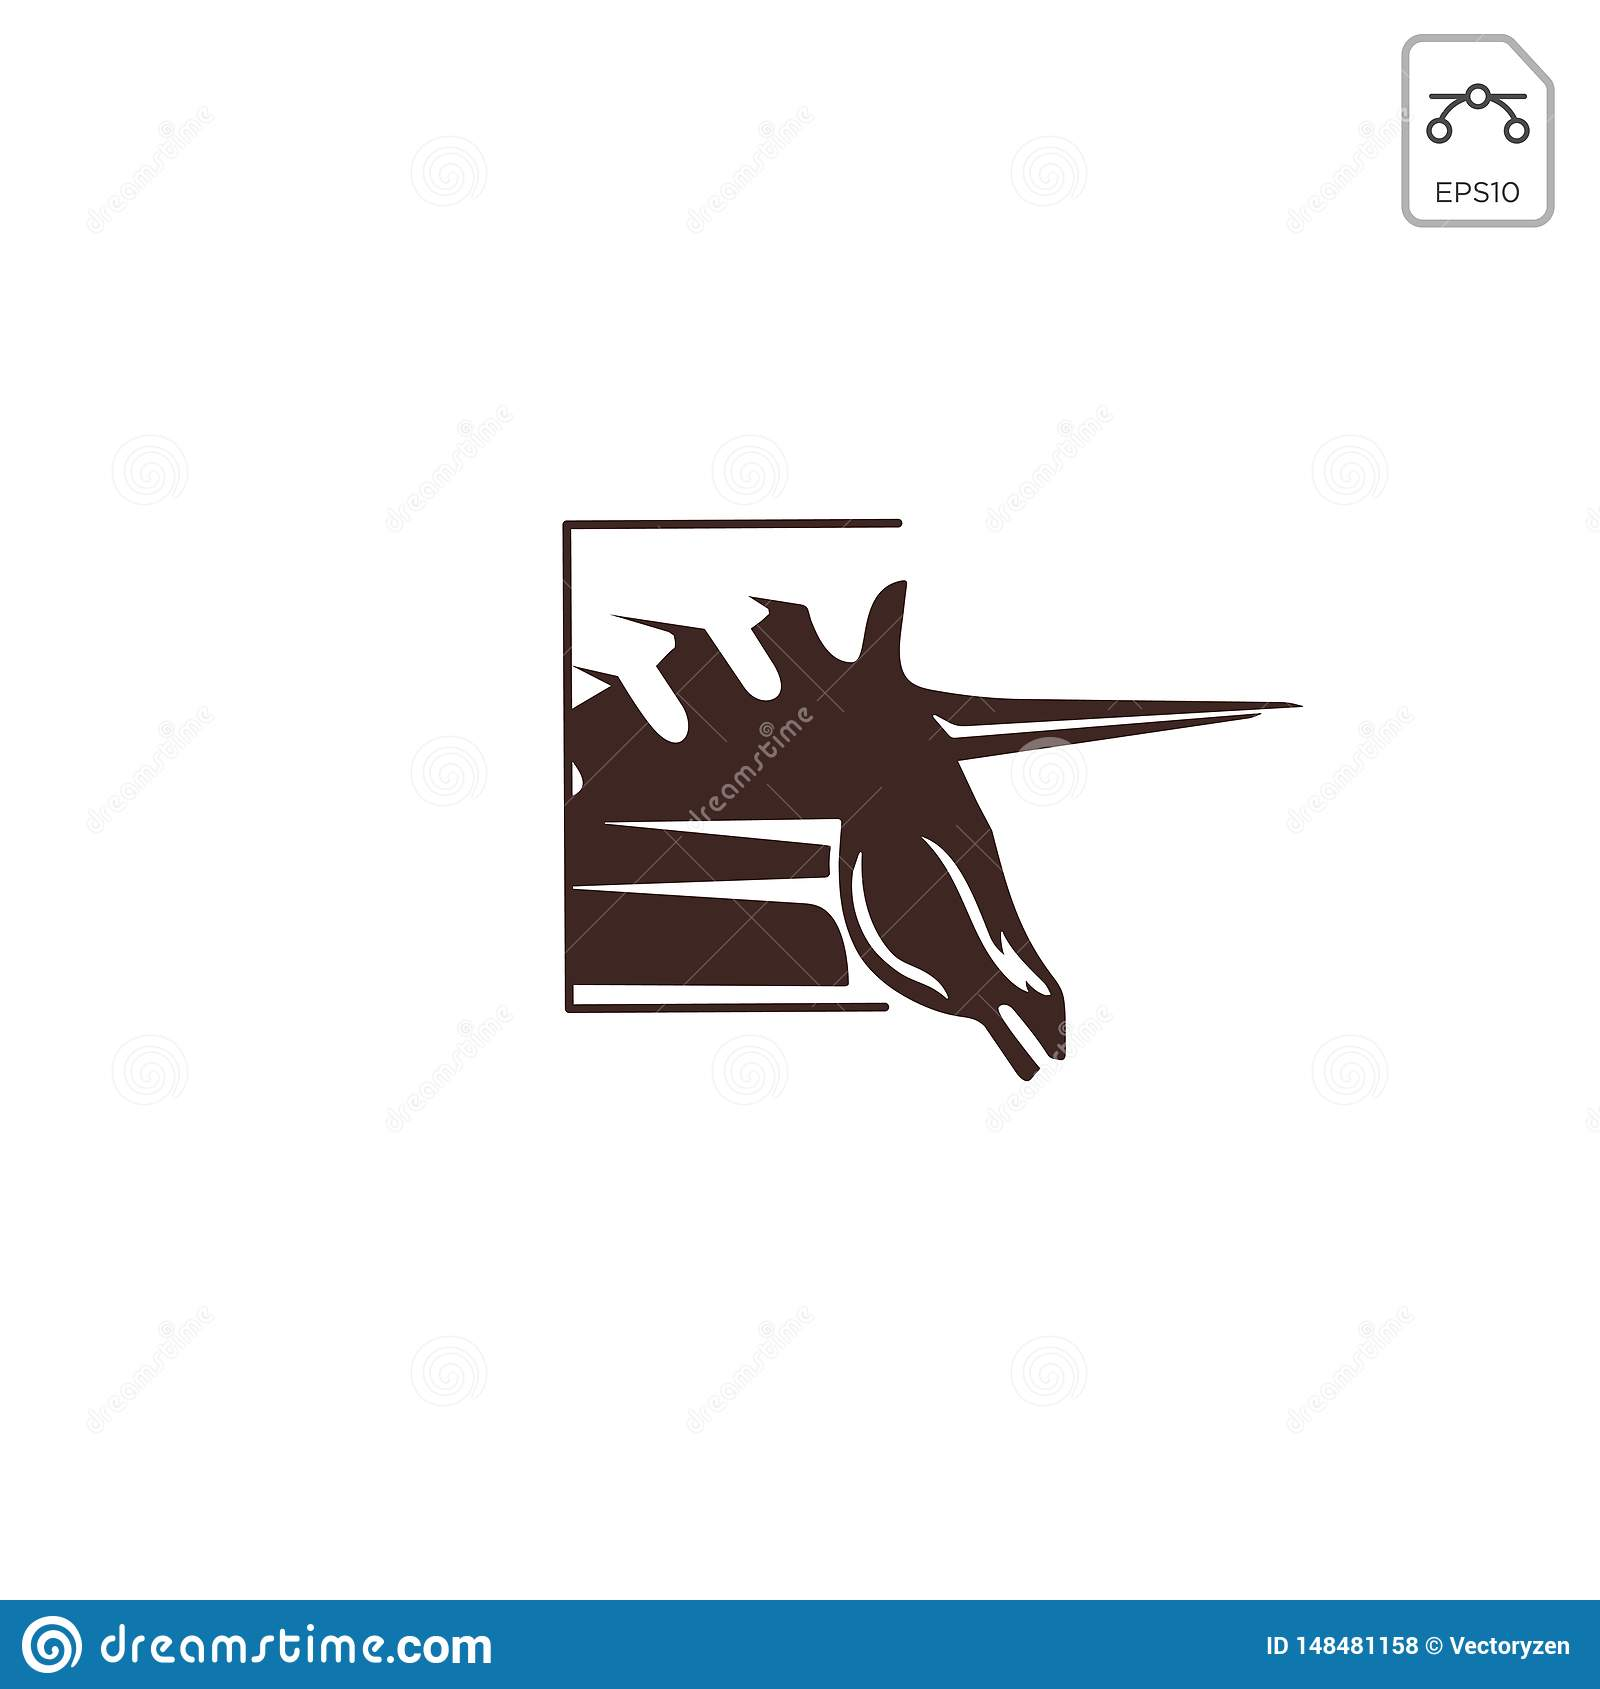 Horse Pegasus Logo Design Inspiration Vector Icon Isolated Stock Vector Illustration Of Element Abstract 148481158